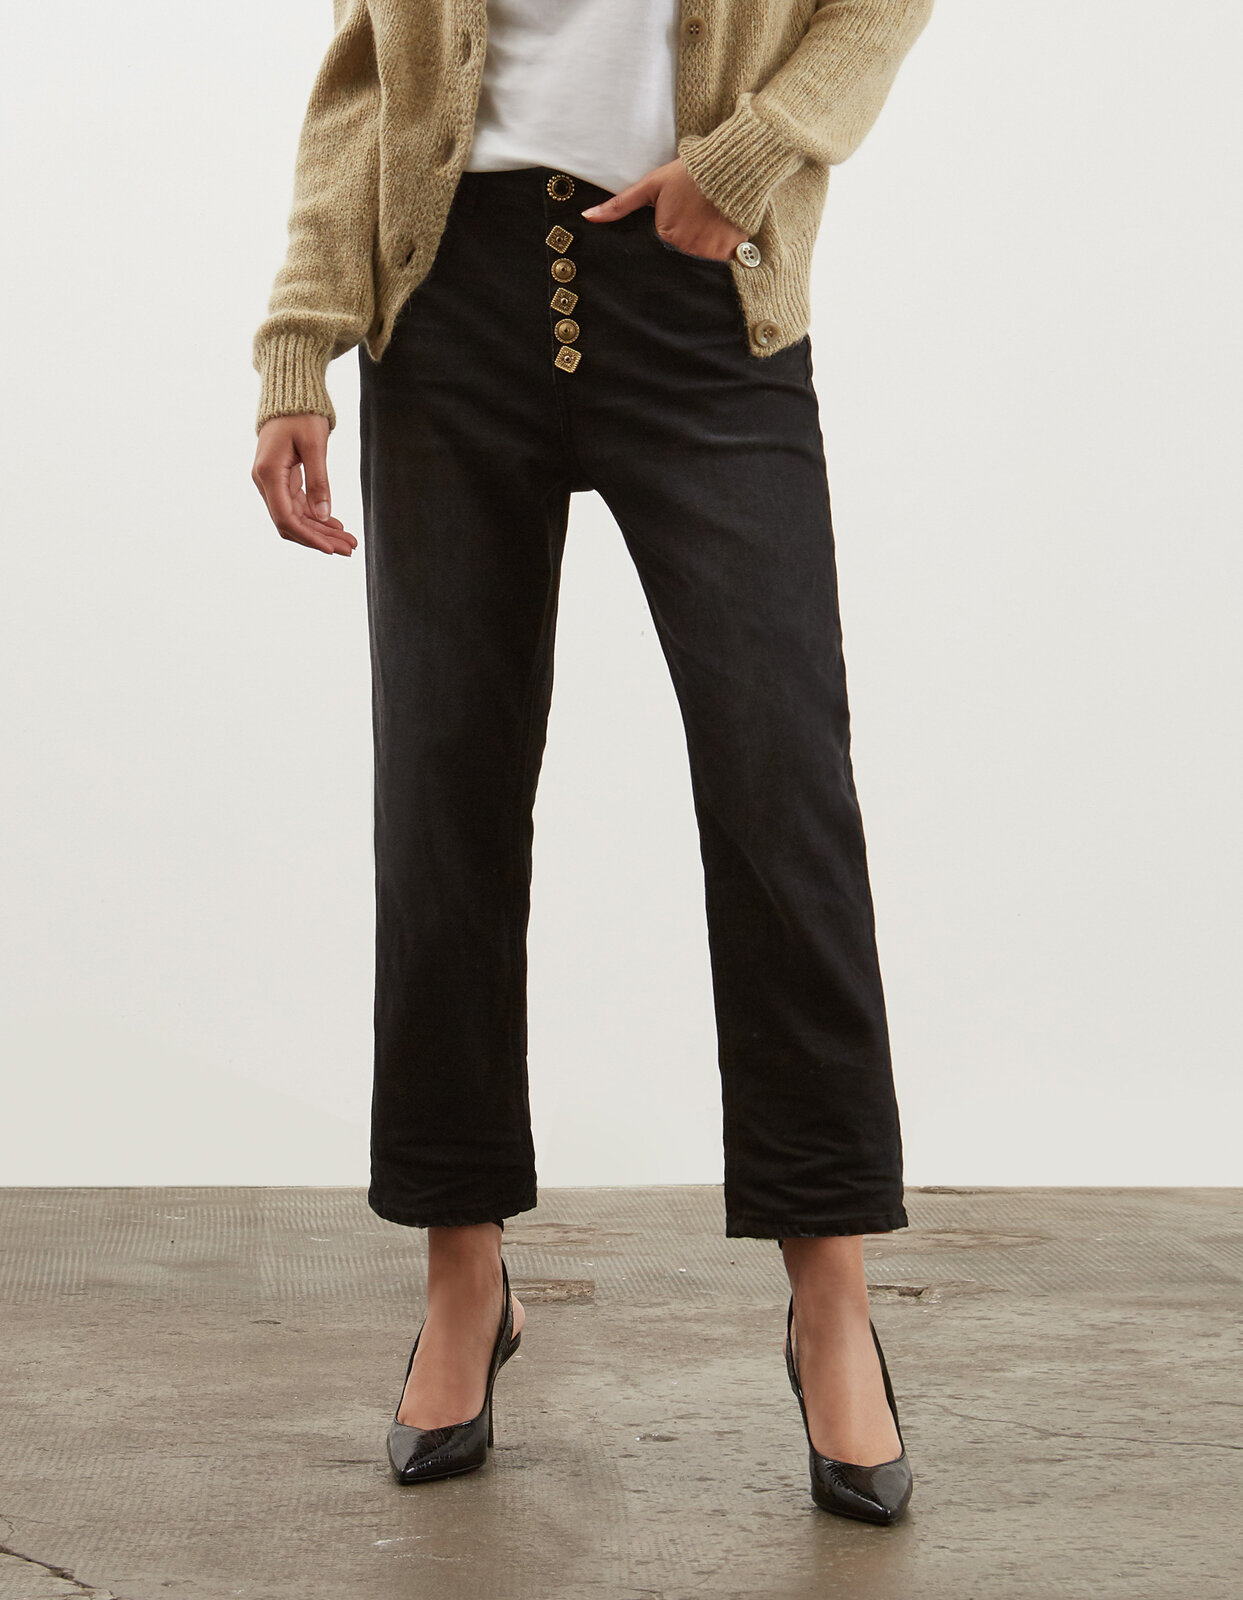 Loose Koons jeans - Dondup